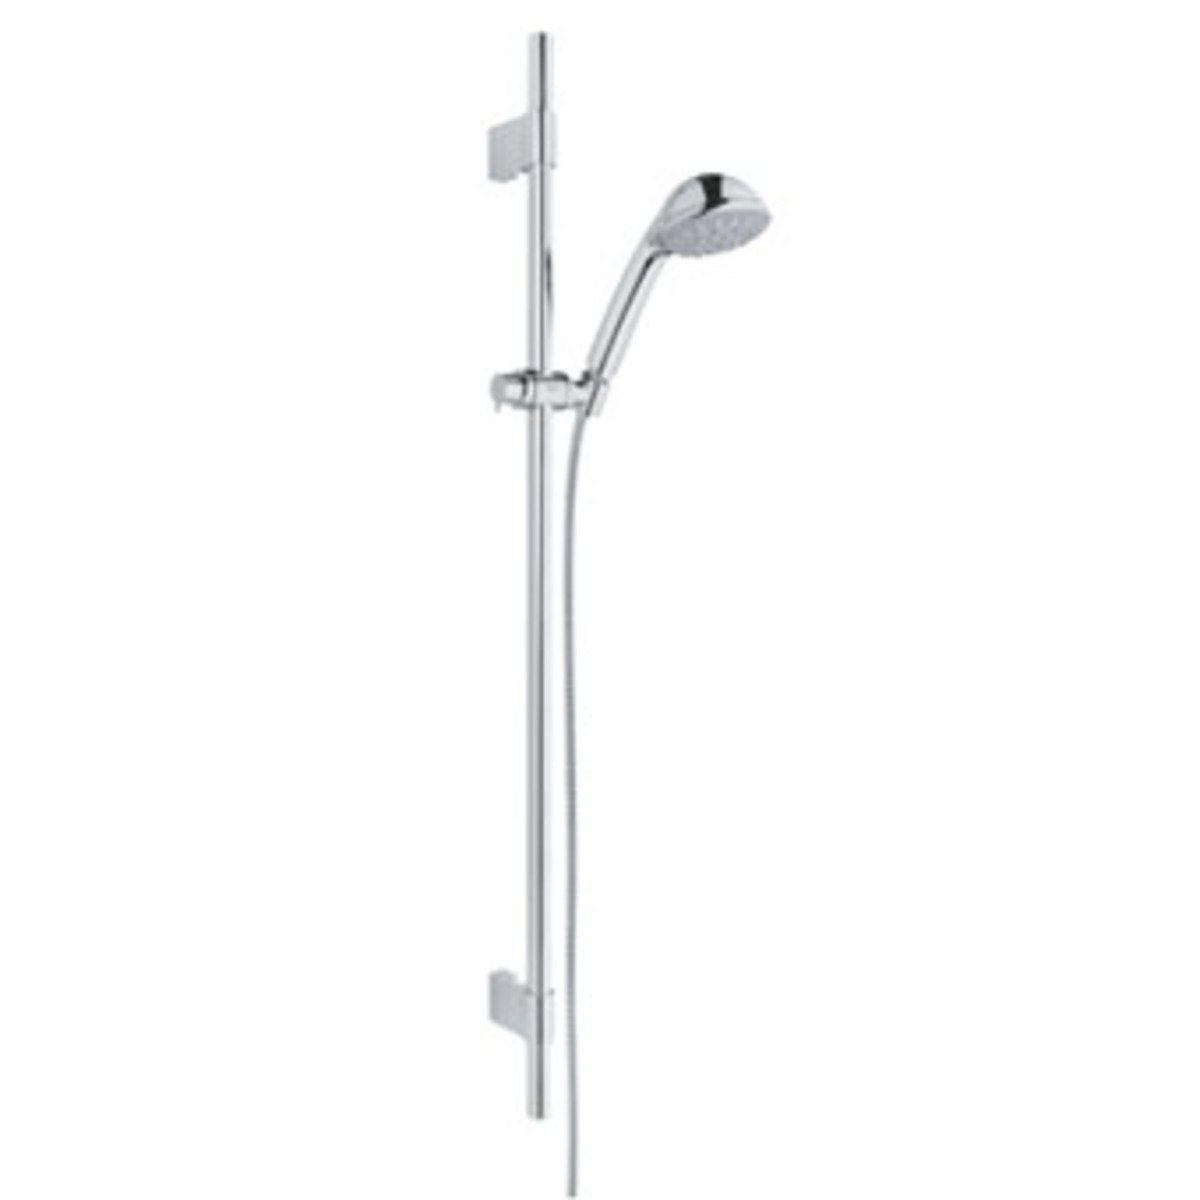 grohe relexa2 ensemble de douche 90cm avec douchette five chrome 28941001. Black Bedroom Furniture Sets. Home Design Ideas